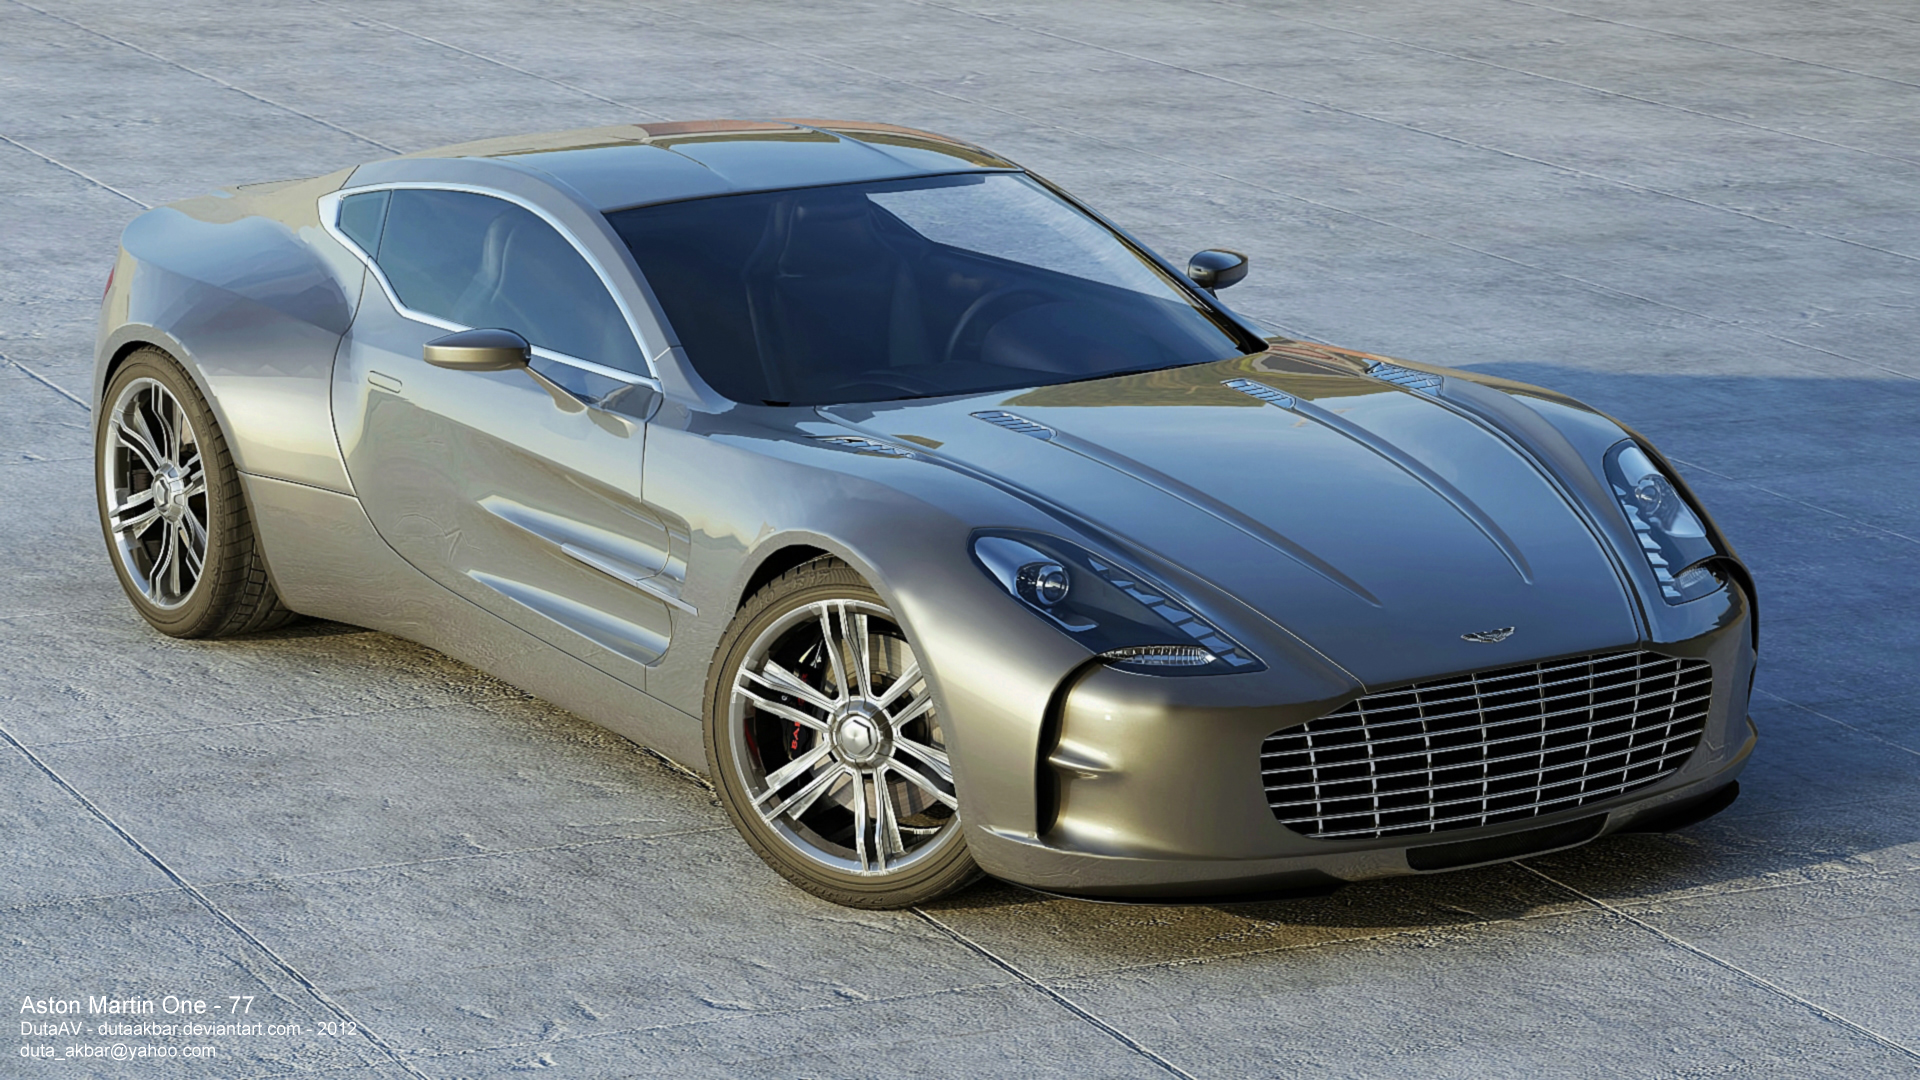 Aston Martin One 77 By Dutaav On Deviantart